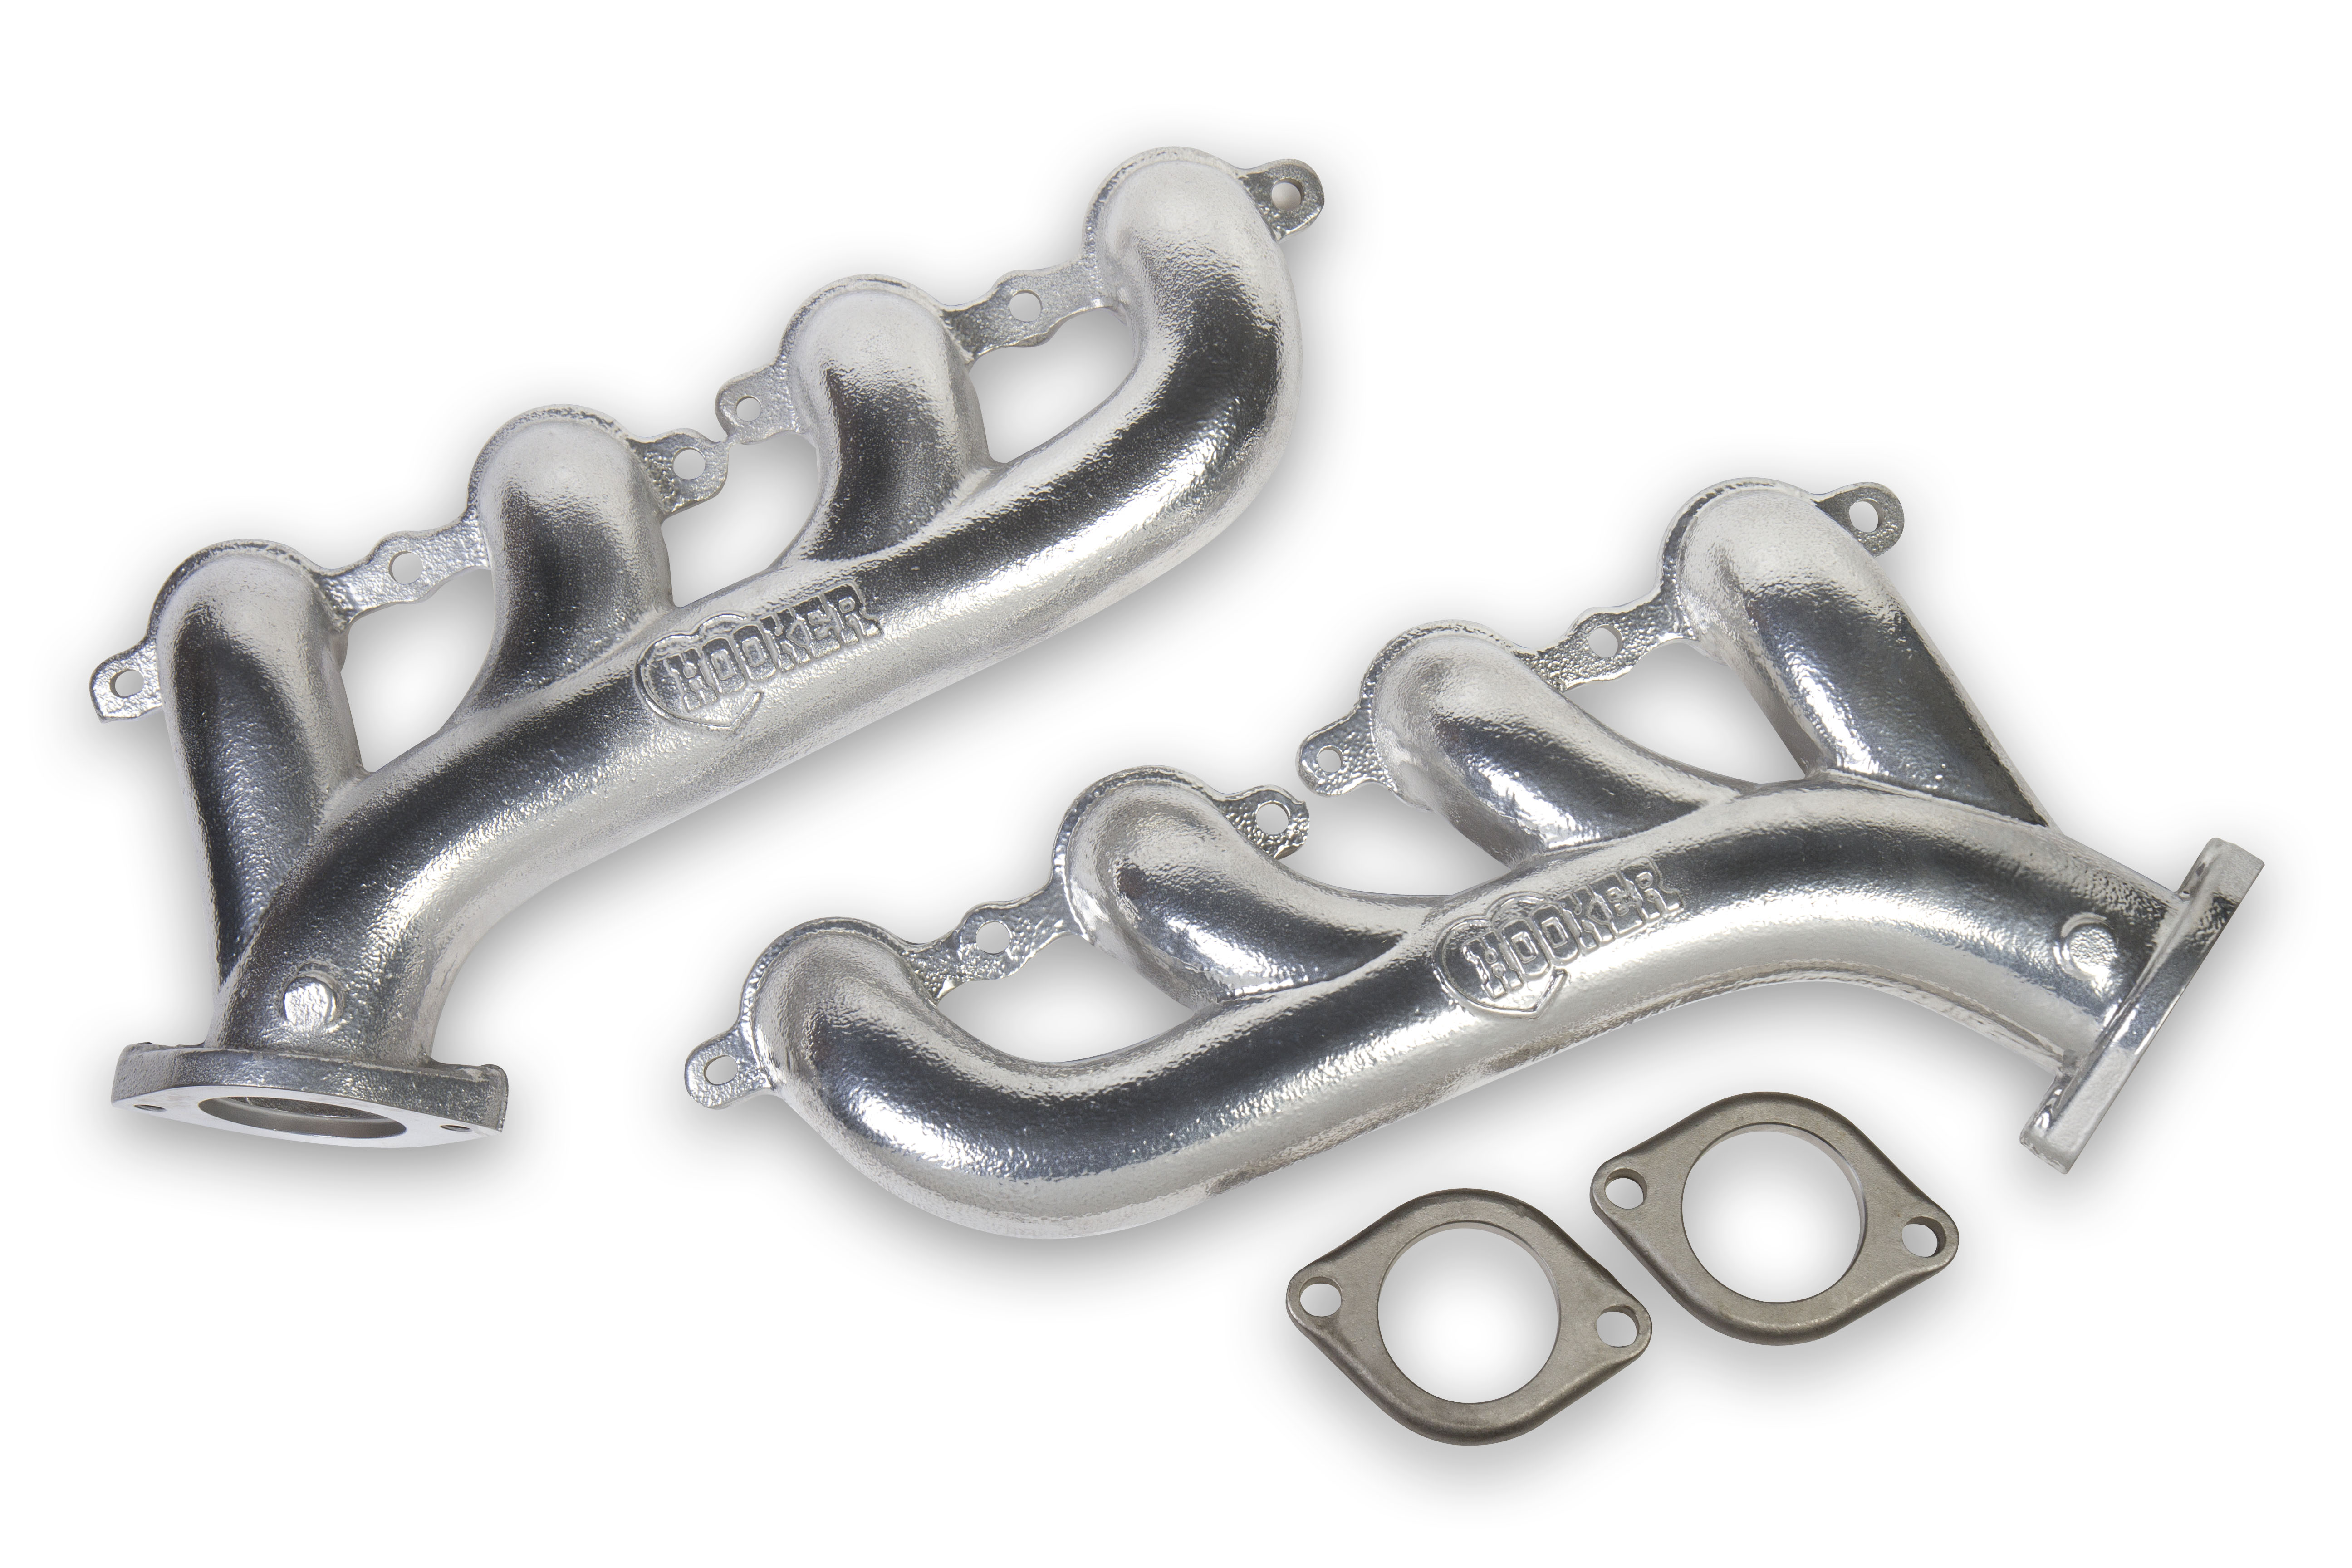 American Classic Truck Parts For Chevrolet Gmc Trucks 1954 Chevy Clutch Linkage 1947 98 Hooker Ls Exhaust Manifolds